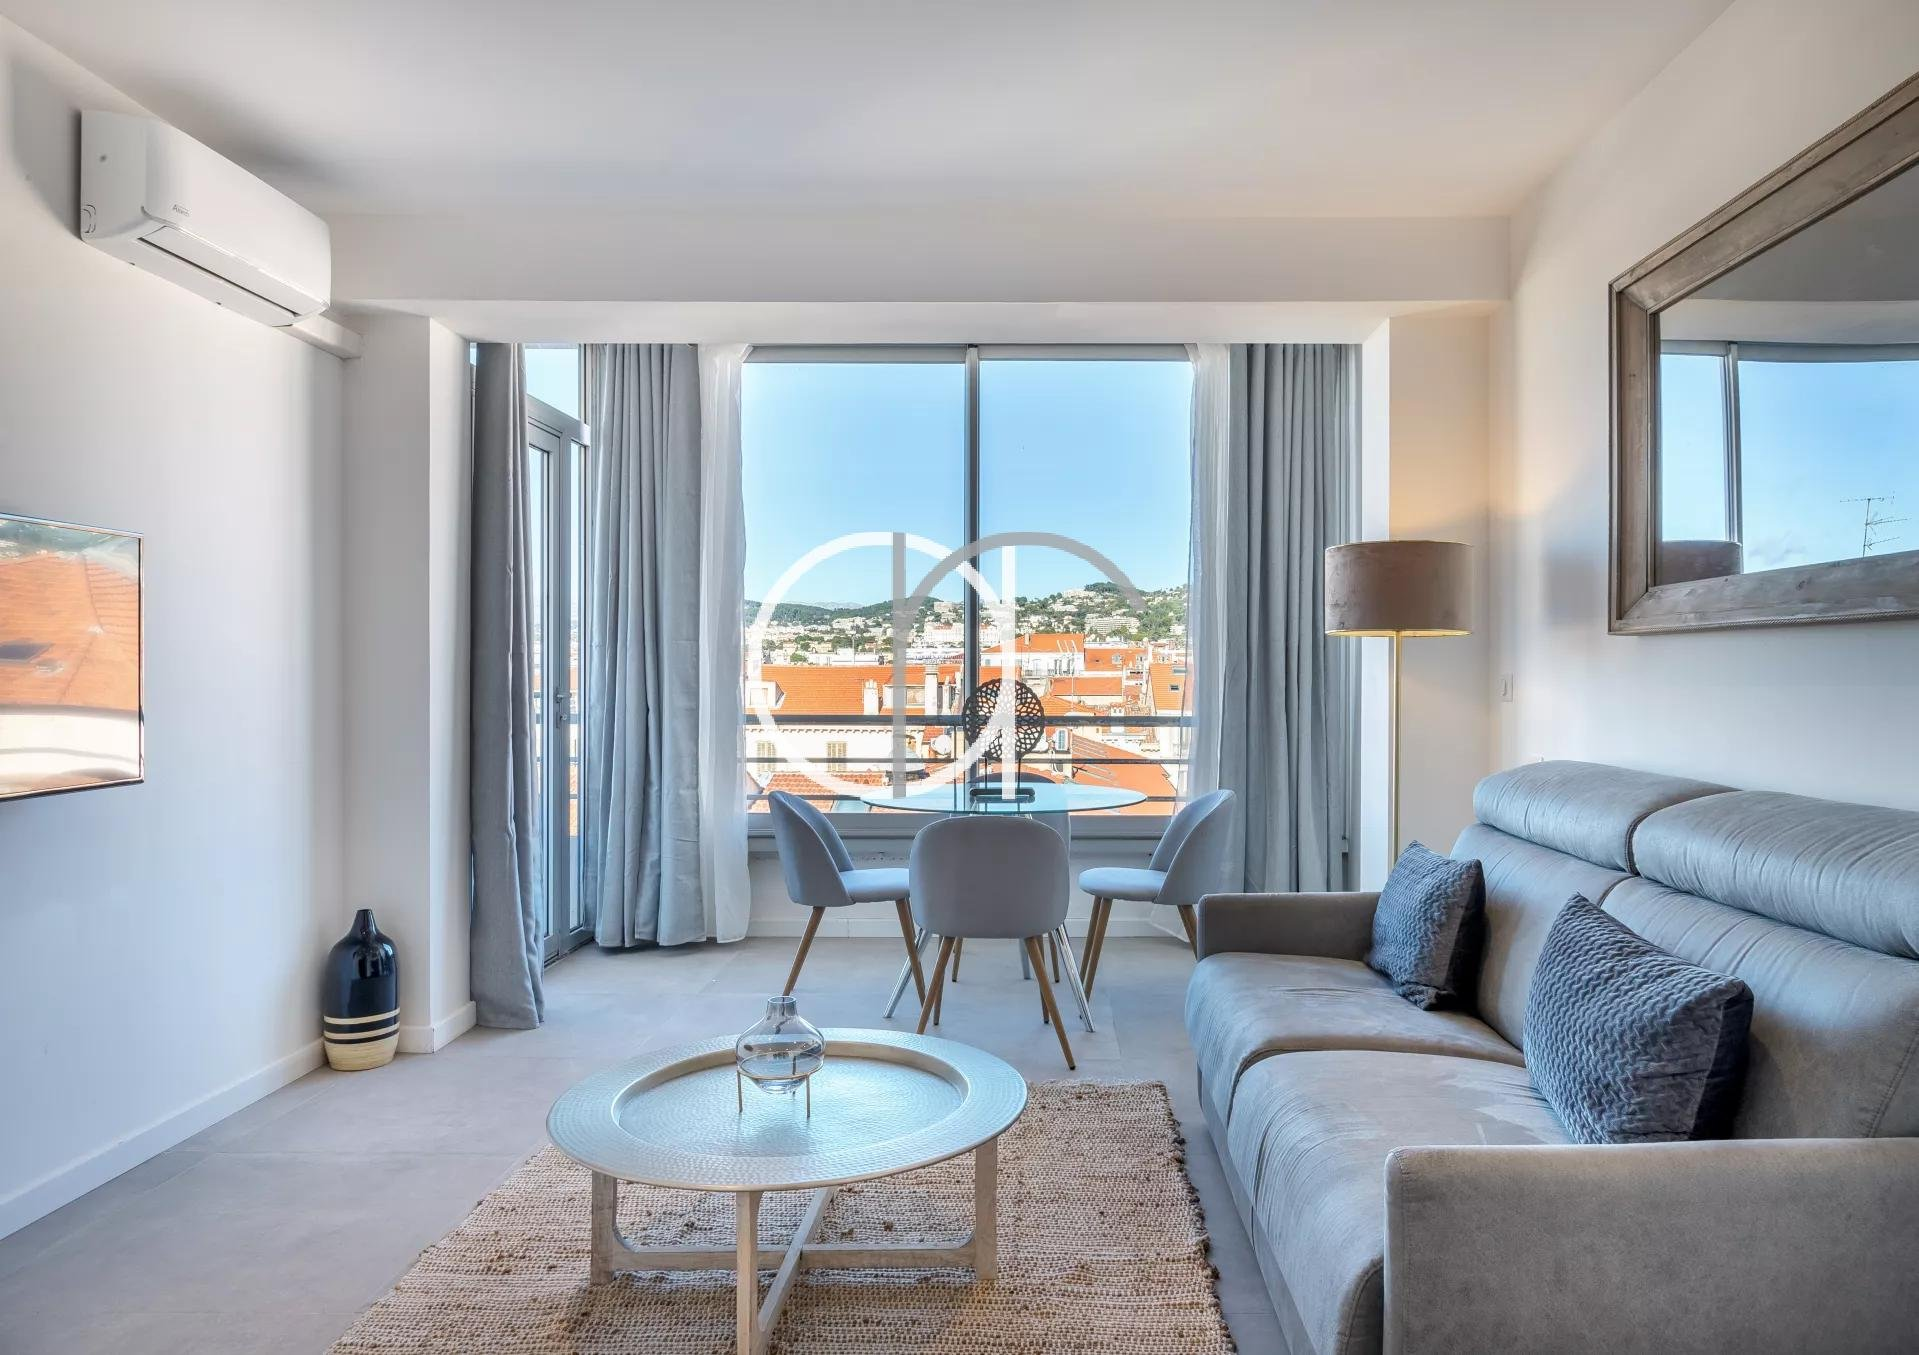 GRAND HOTEL - STUDIO WITH TERRACE - 4 PEOPLE